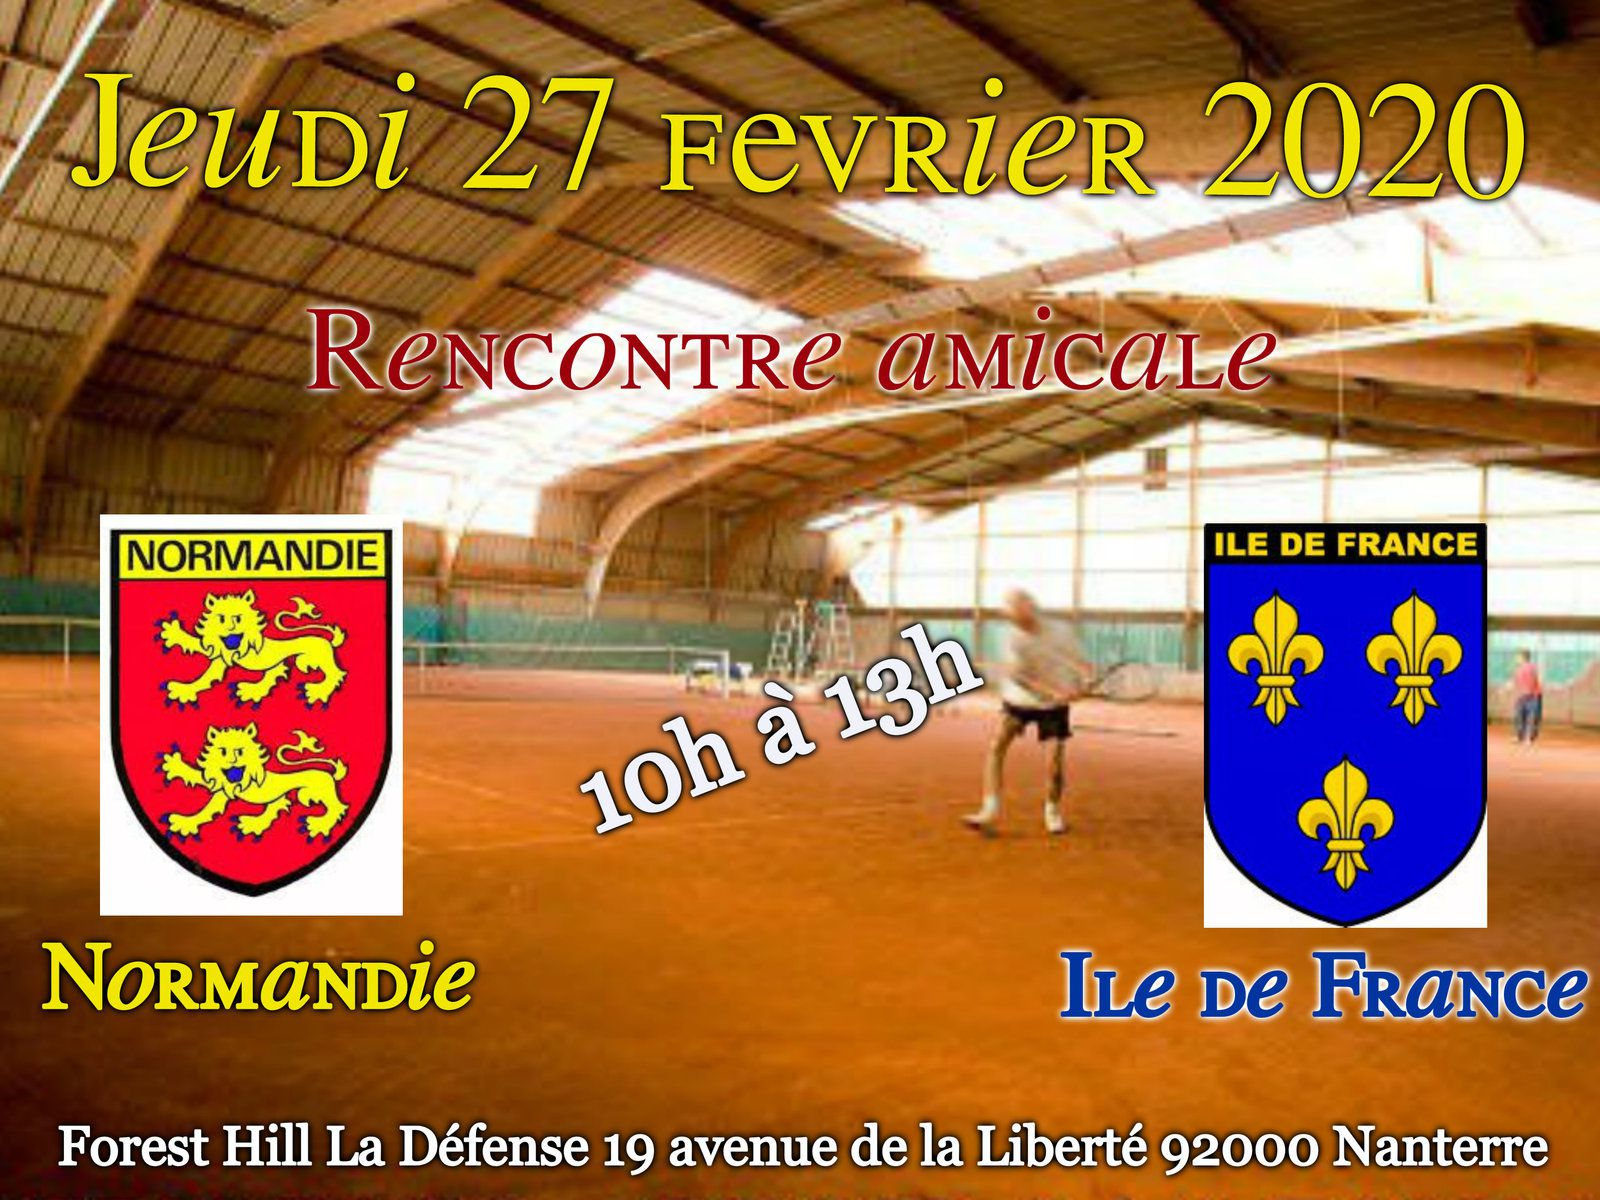 Annulation rencontre amicale AFTS IDF-Normandie